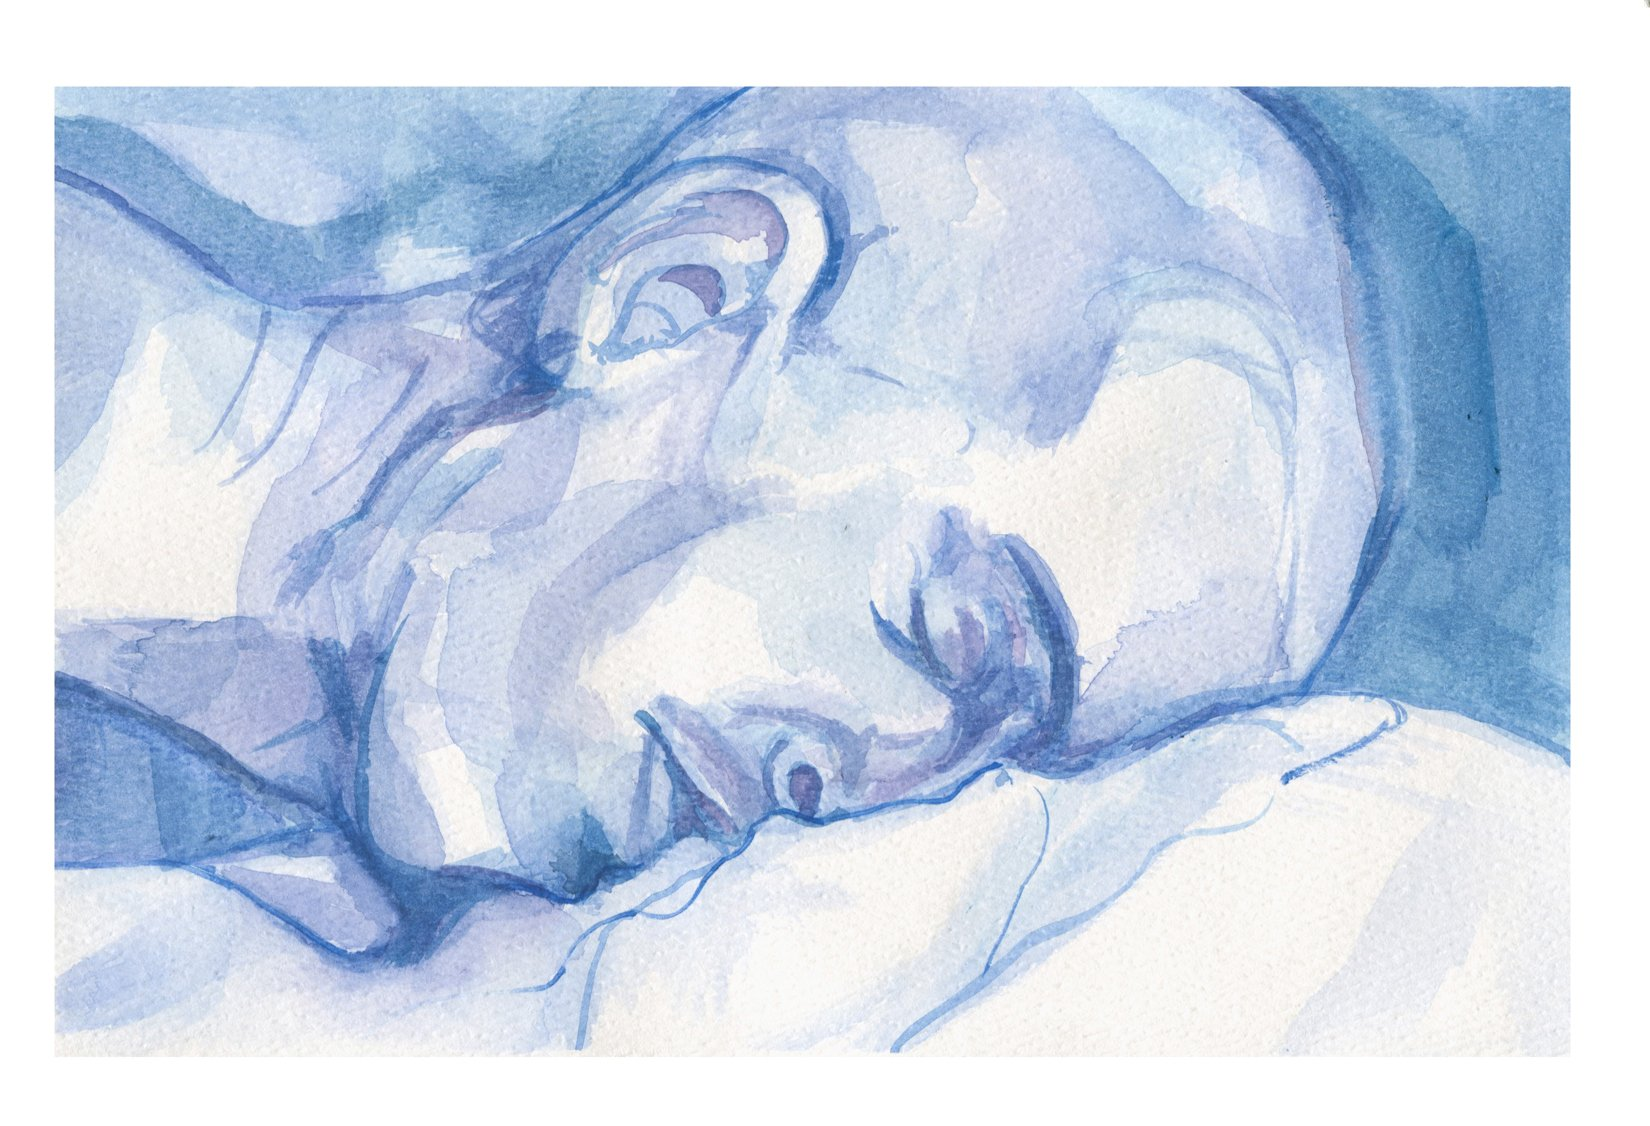 This watercolour in shades of blue portrays a mans head, with eyes closed. He is horizontal, face down and fills the composition from the bottom of his neck, to the tip of his head. There is an ambiguous form beneath him. A few long and curving lines